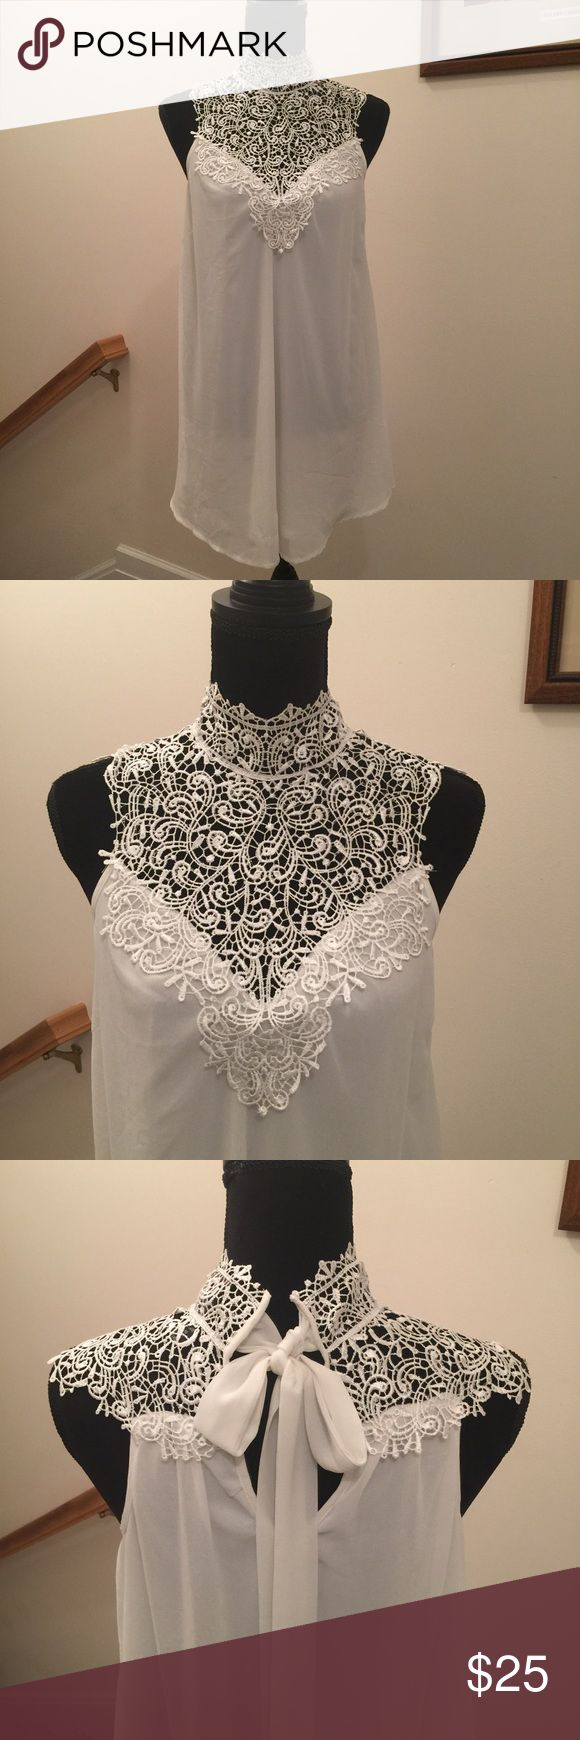 Beautiful ivory blouse The pyramid collection size large color Ivory and made out of 100% shell polyester Linning 100% polyester lace .100% polyester delicate lace at top. Hangs down to mid thigh. The pyramid collection Tops Blouses